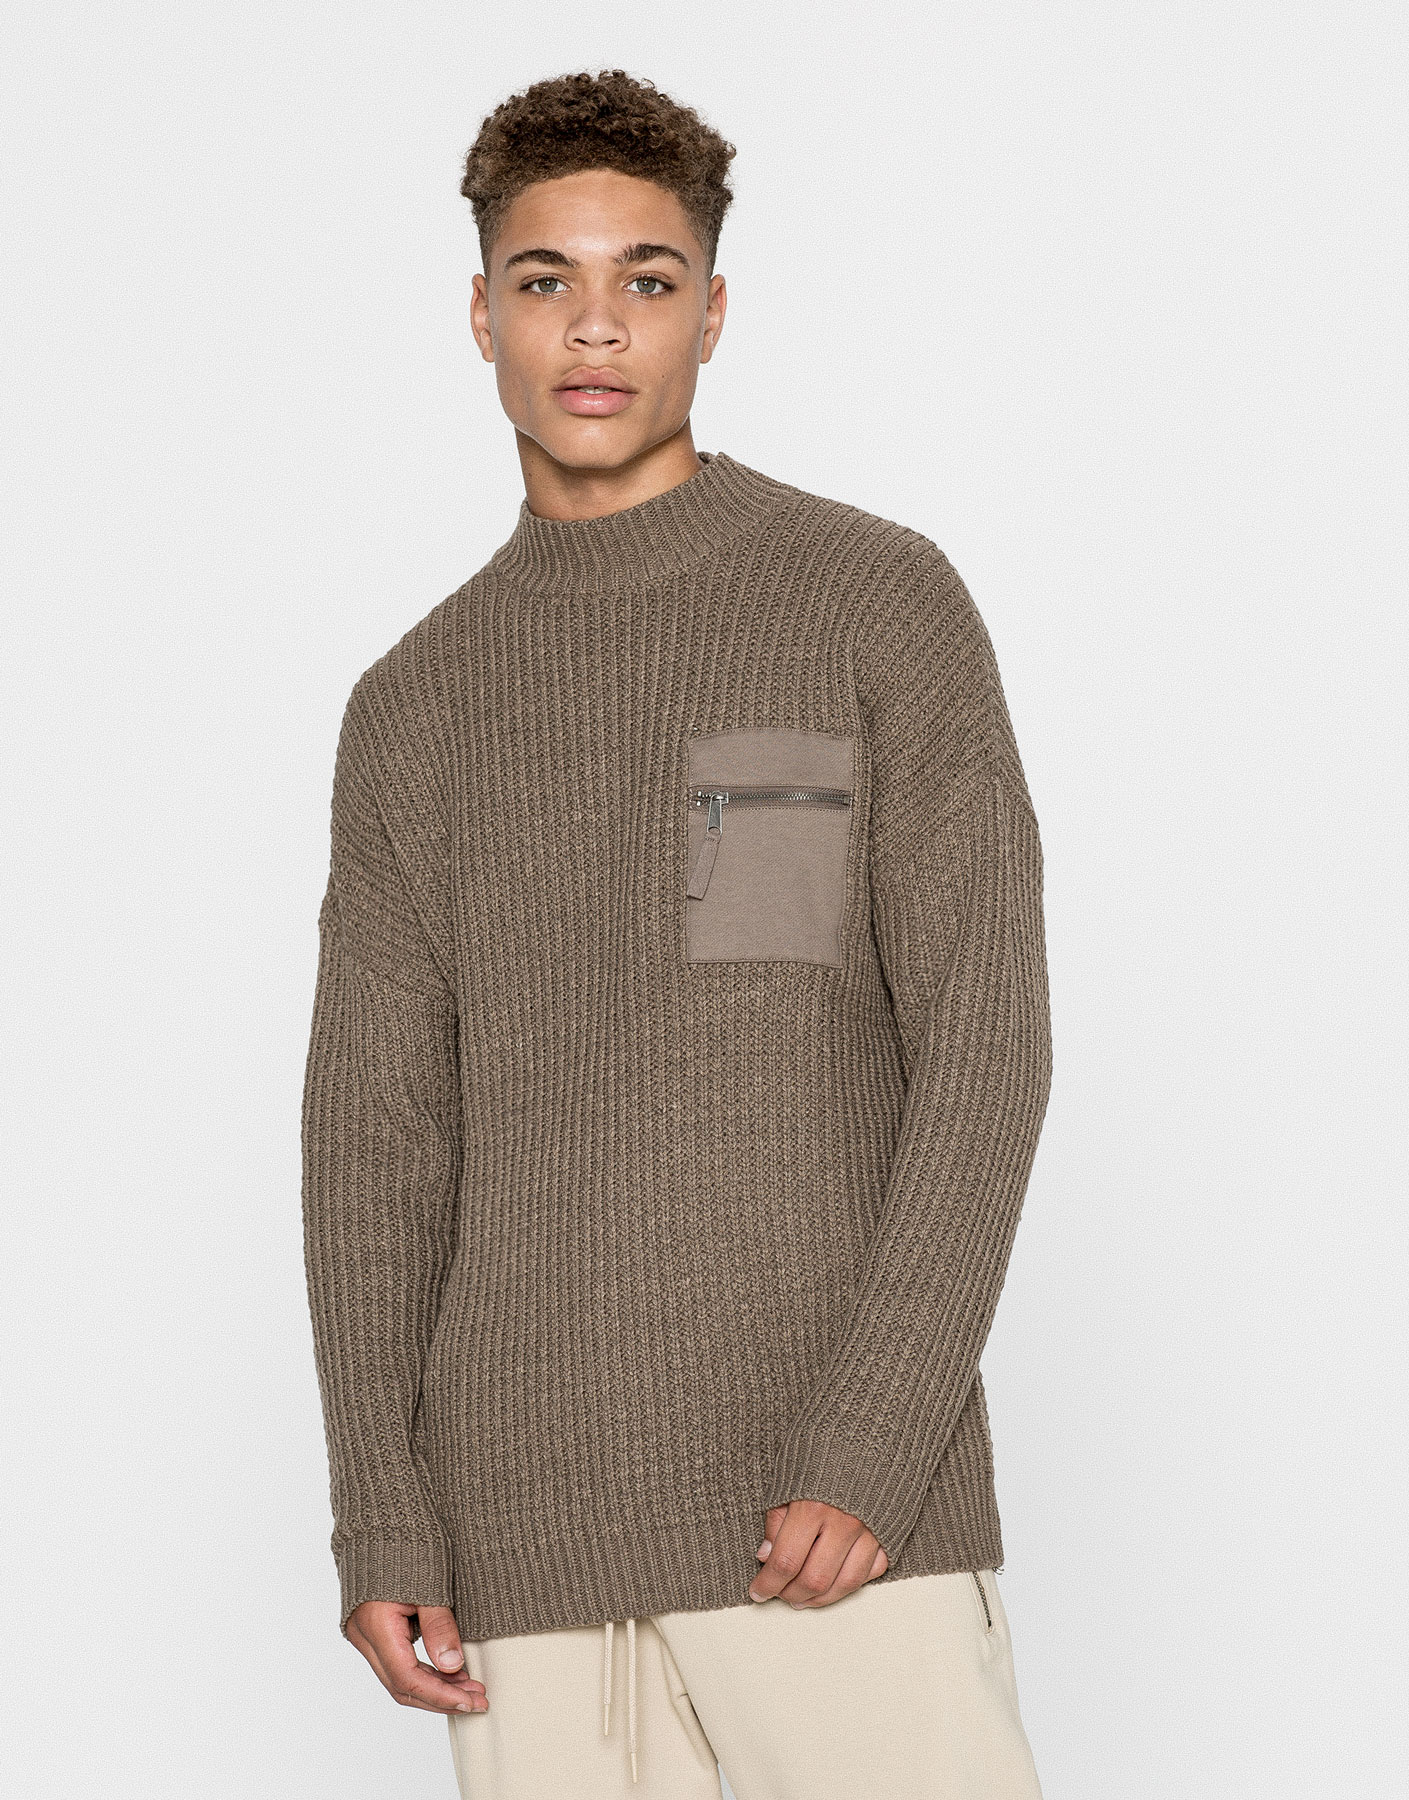 High neck sweater with pocket